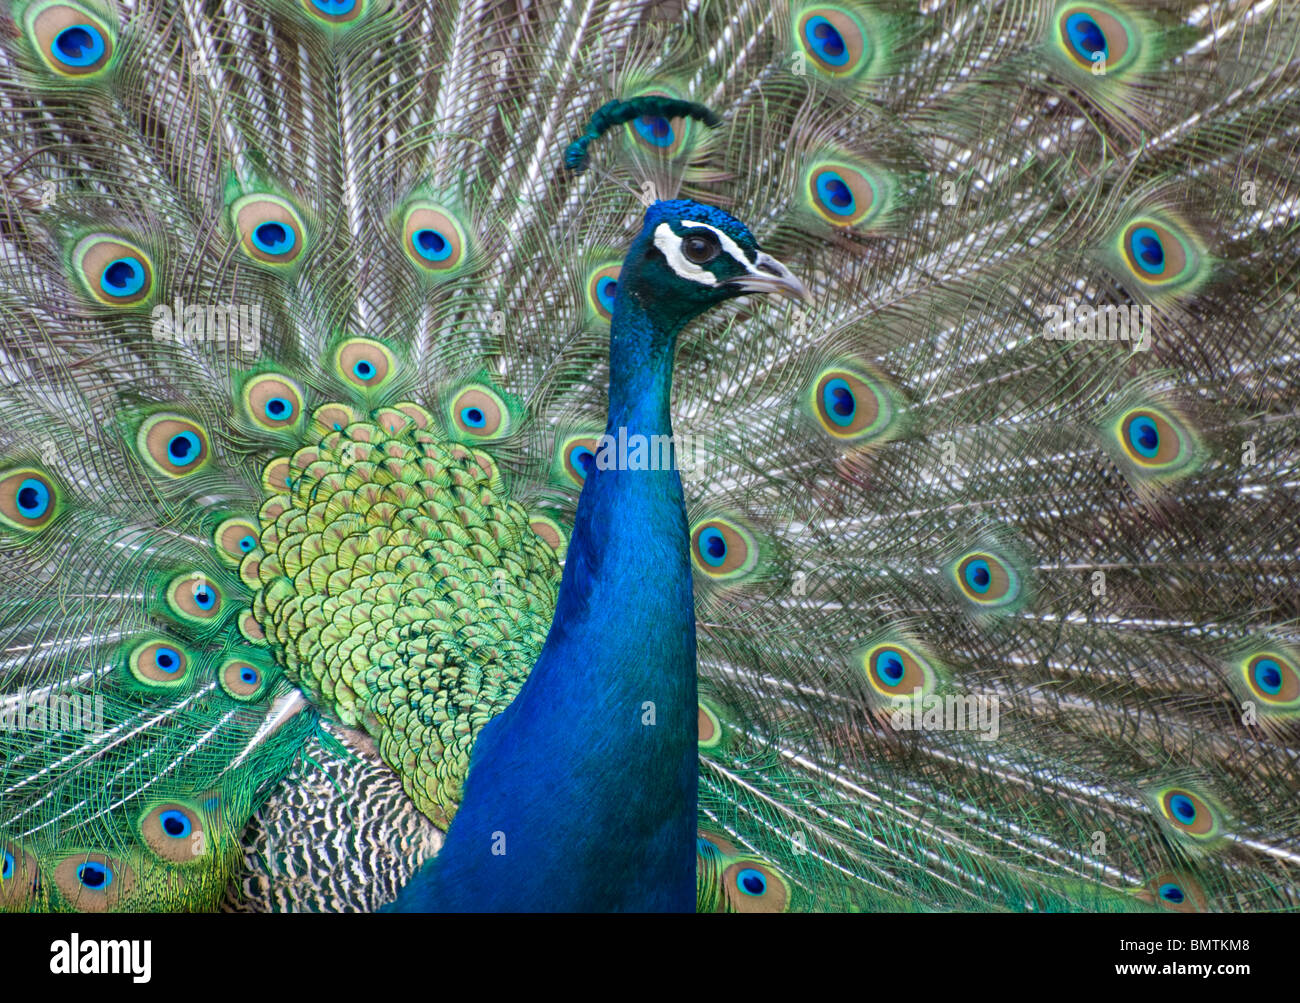 Peacock strutting around with feathers out.looking at camera.colourful beauty. Stock Photo